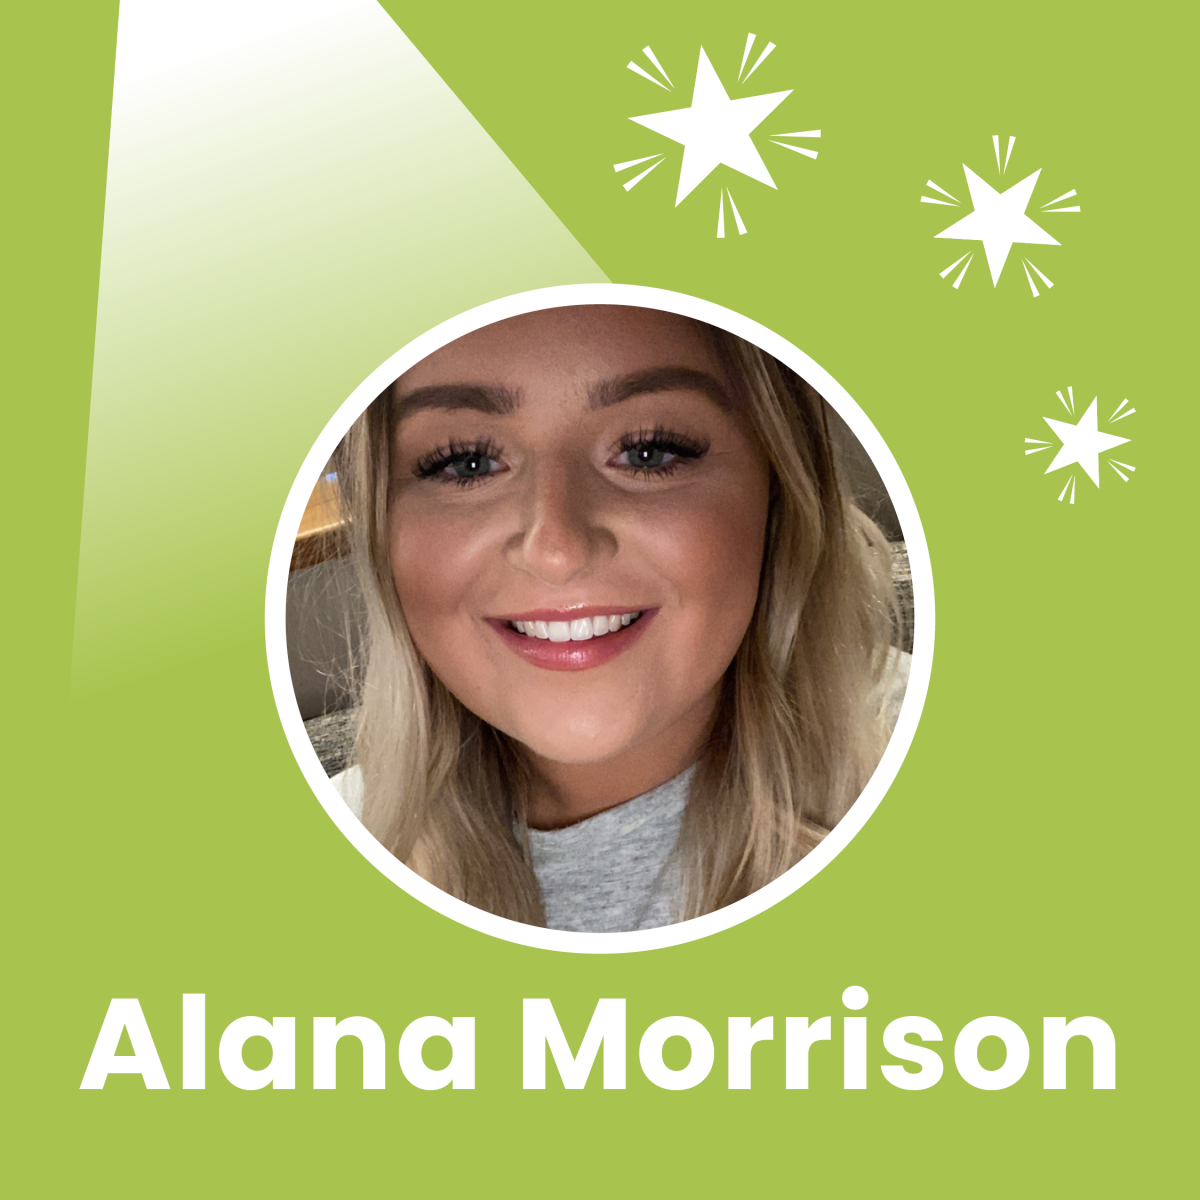 Alana Morrison demonstrates true dedication to providing care when urgent cover is required